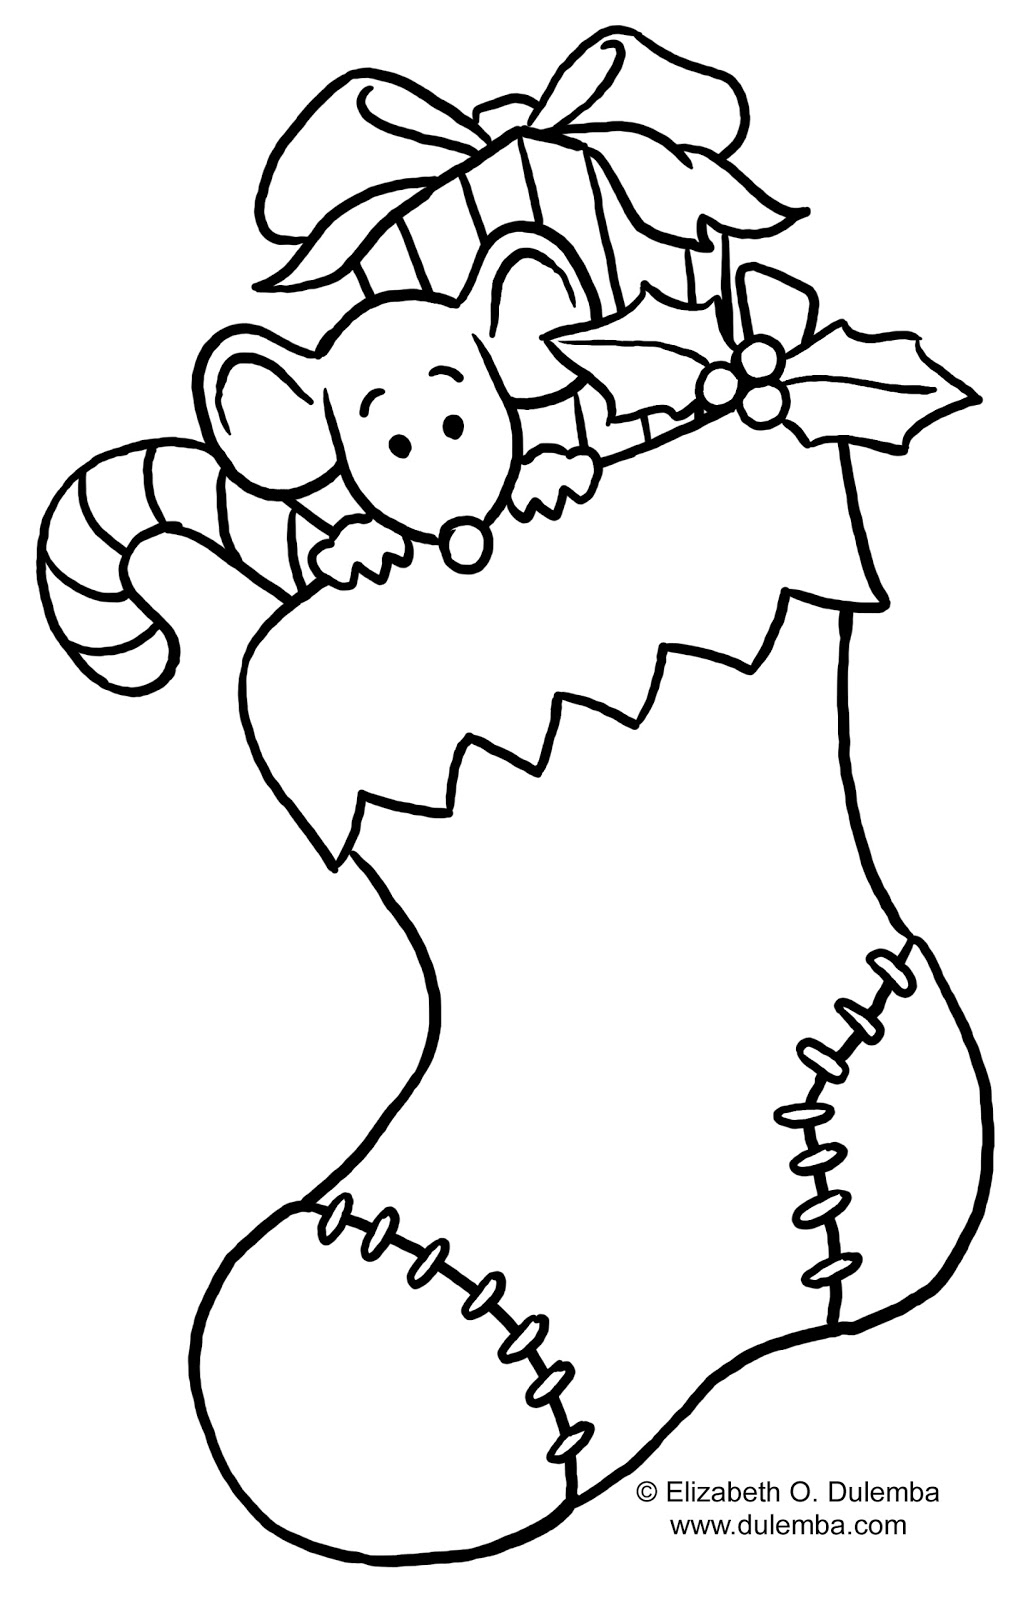 stocking free coloring pages - photo#14